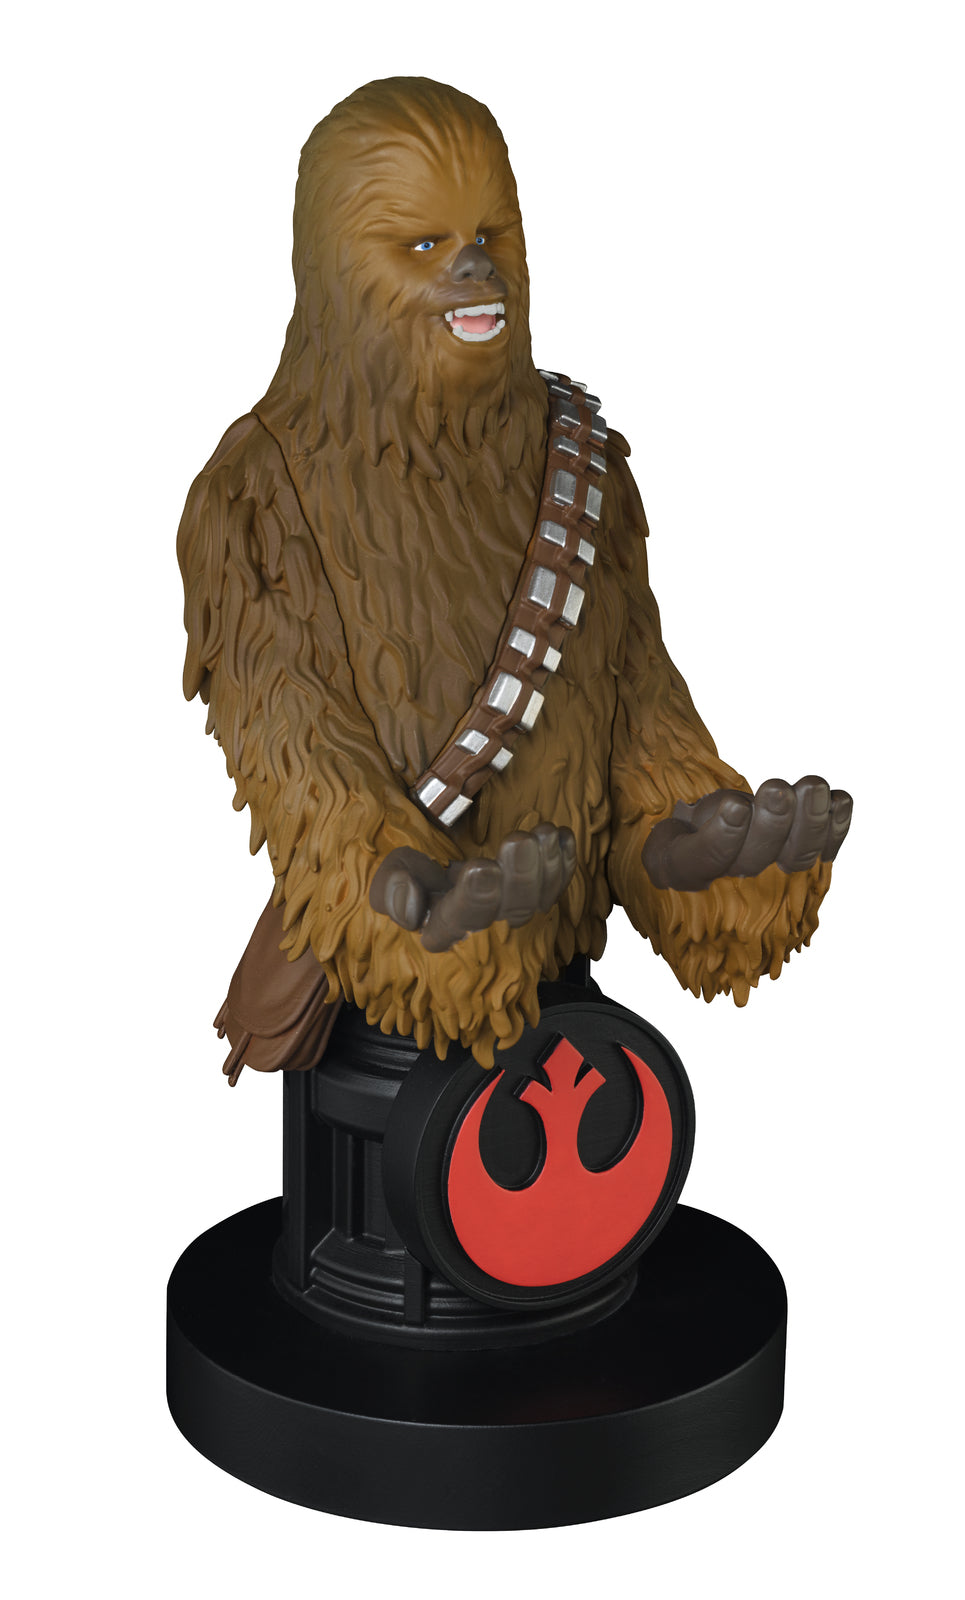 Cable Guy Controller Holder - Chewbacca on Plinth - PS4